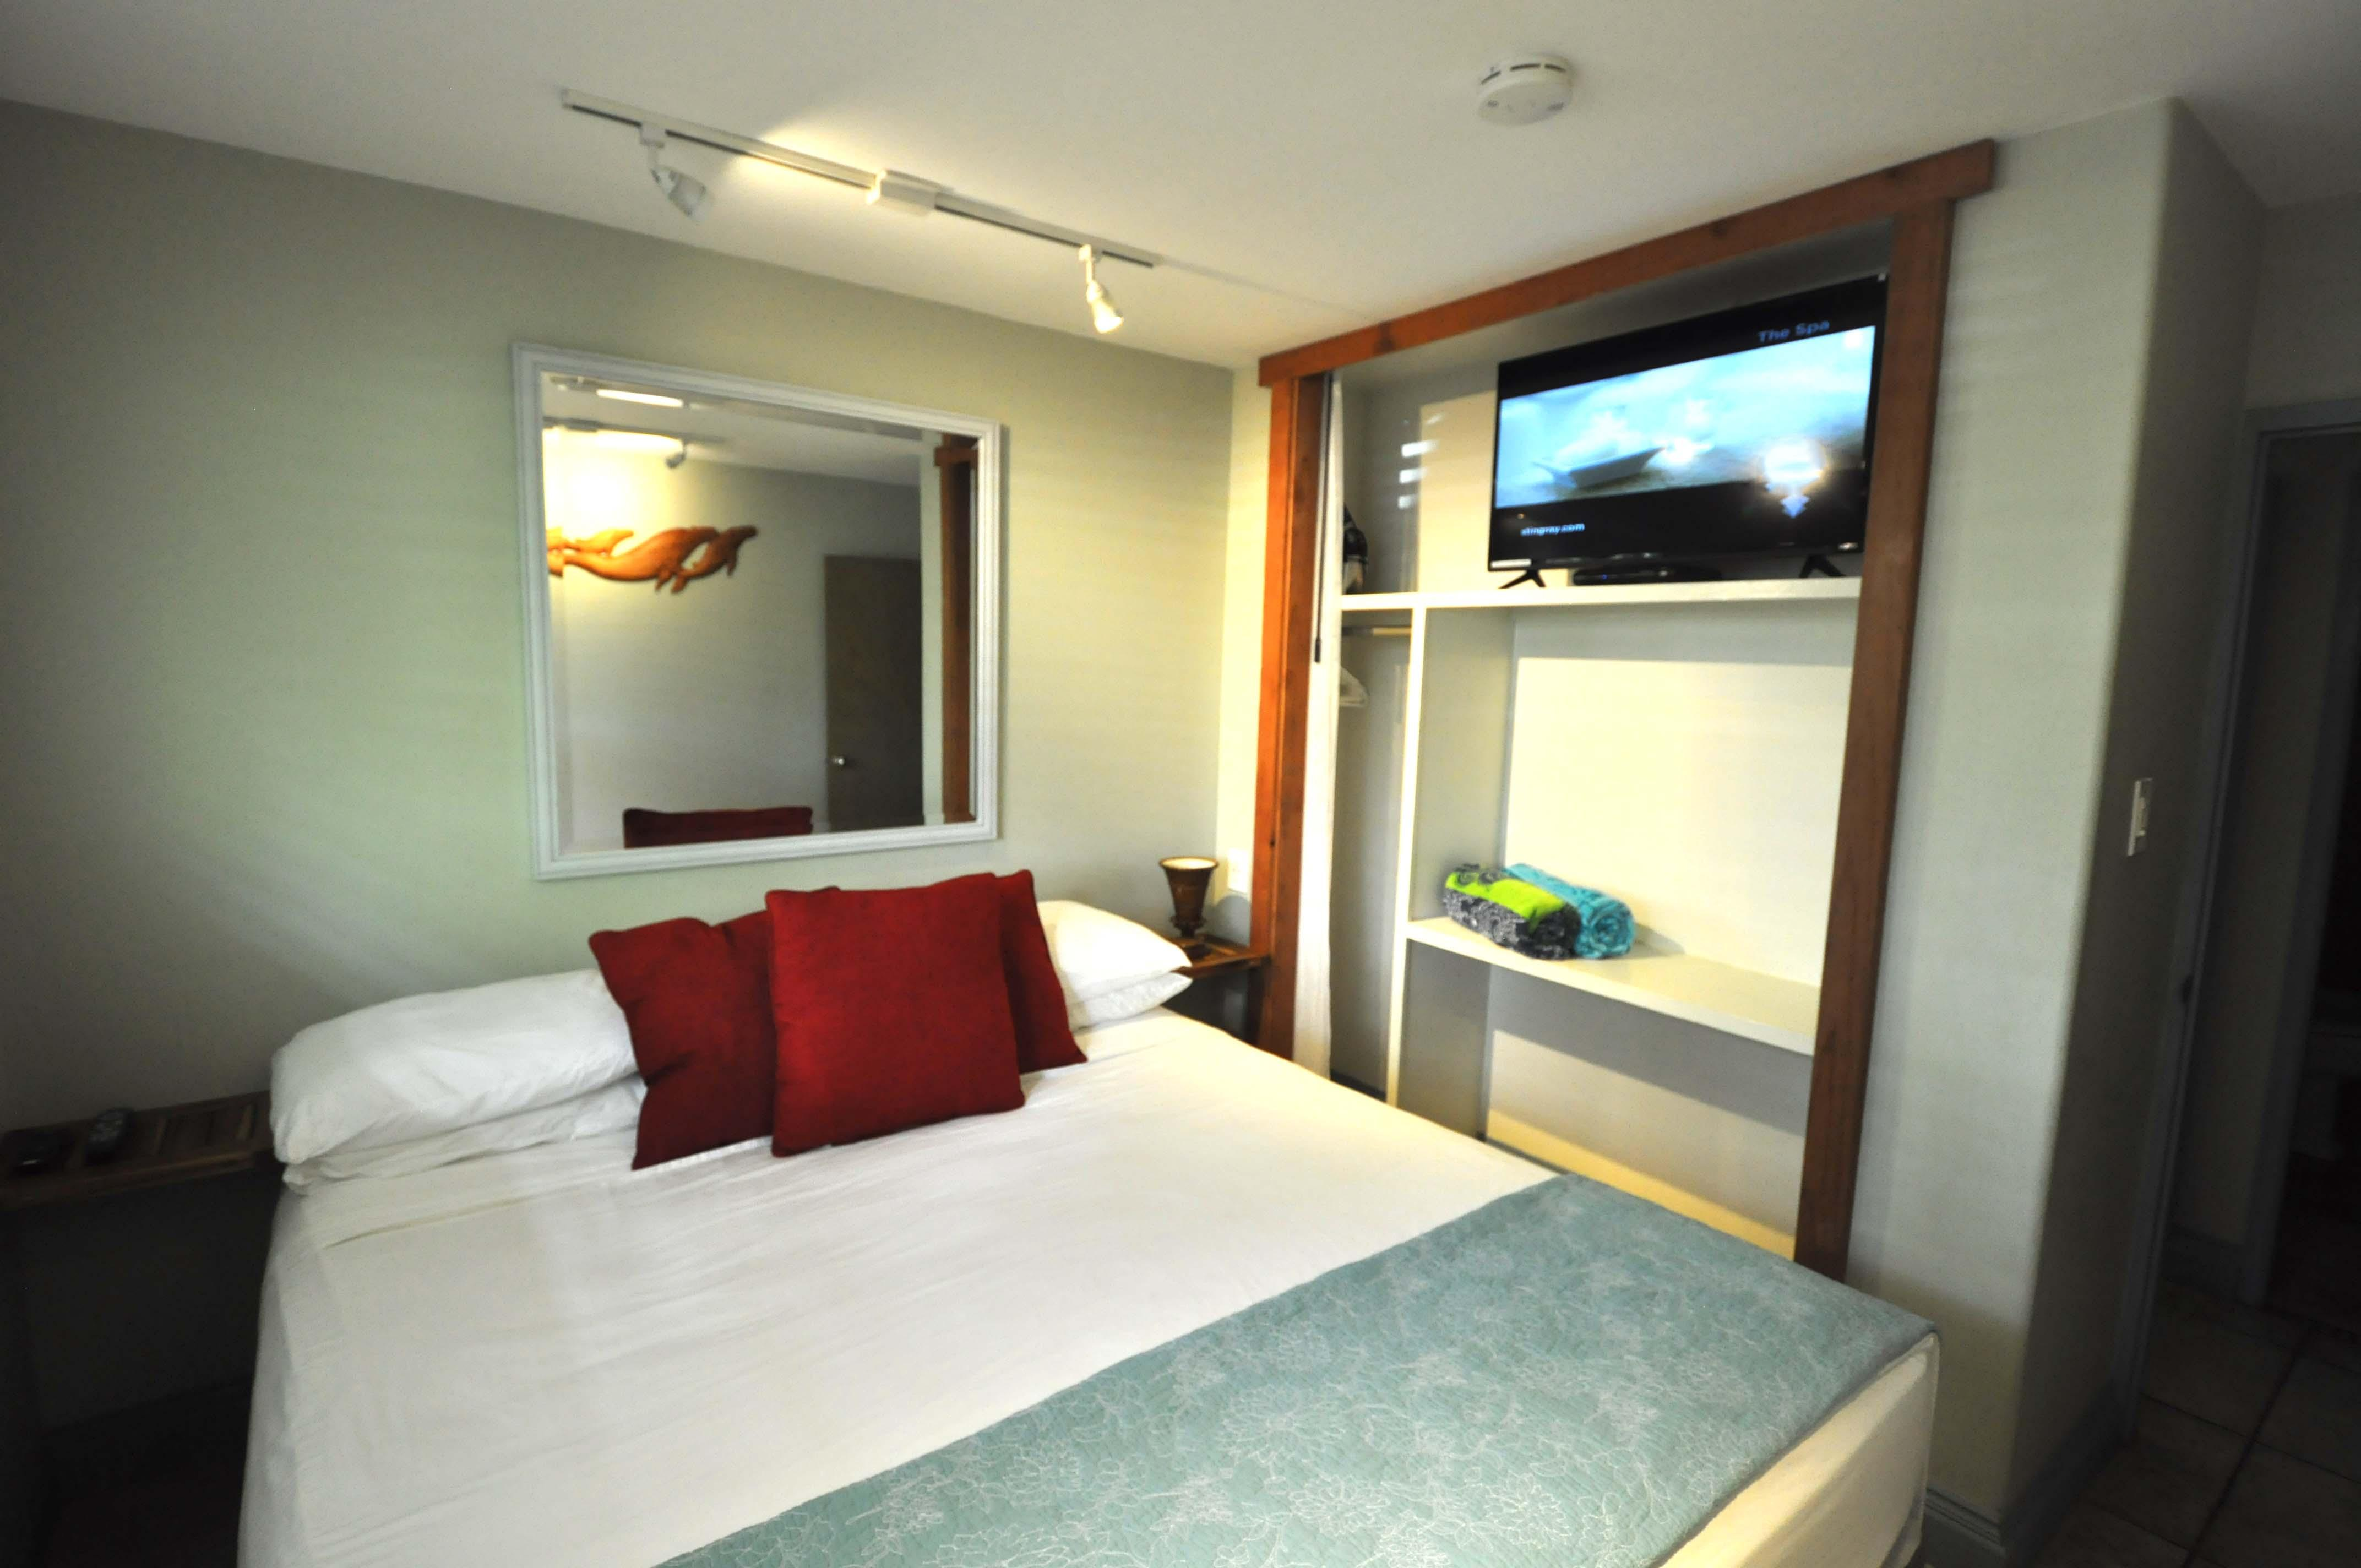 Bedroom with cal king bed.